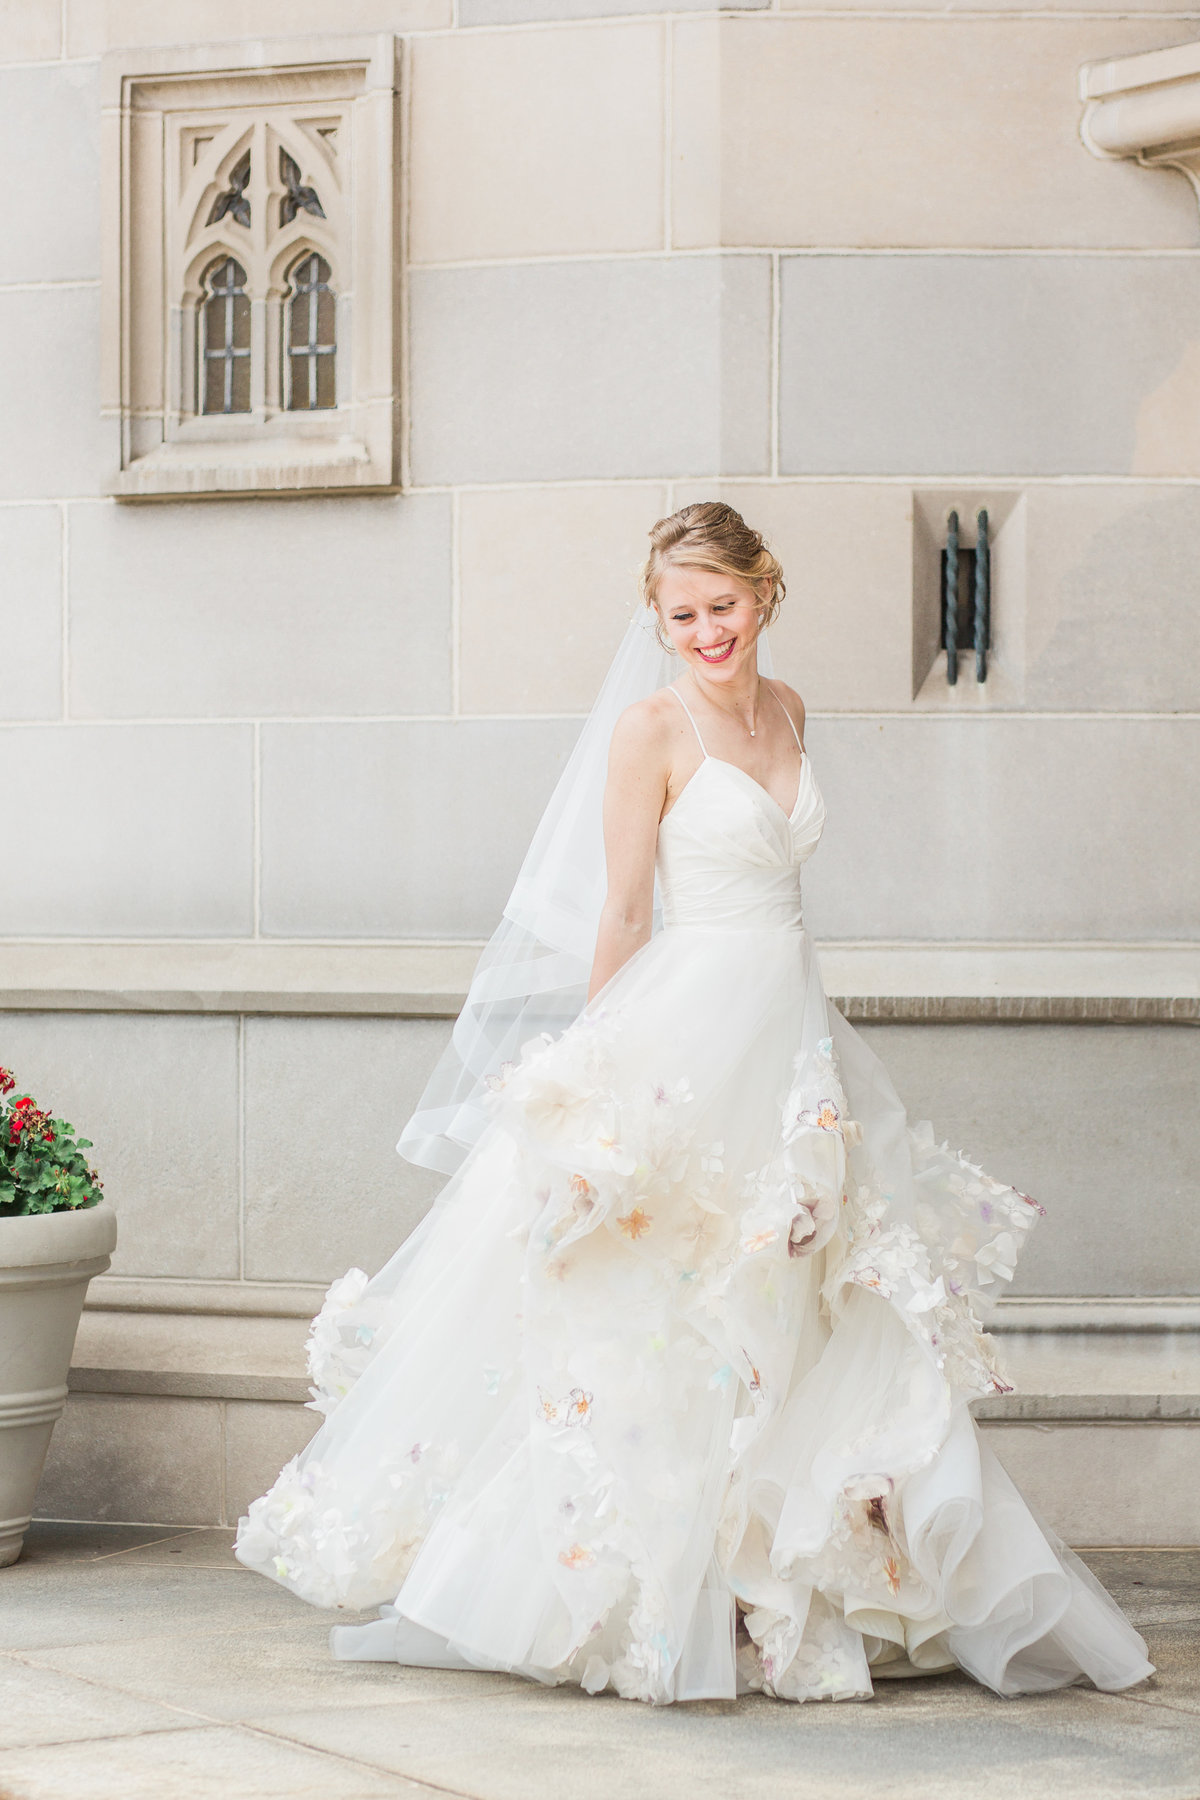 Basilica of the Sacred Heart Floral Wedding Dress Photo